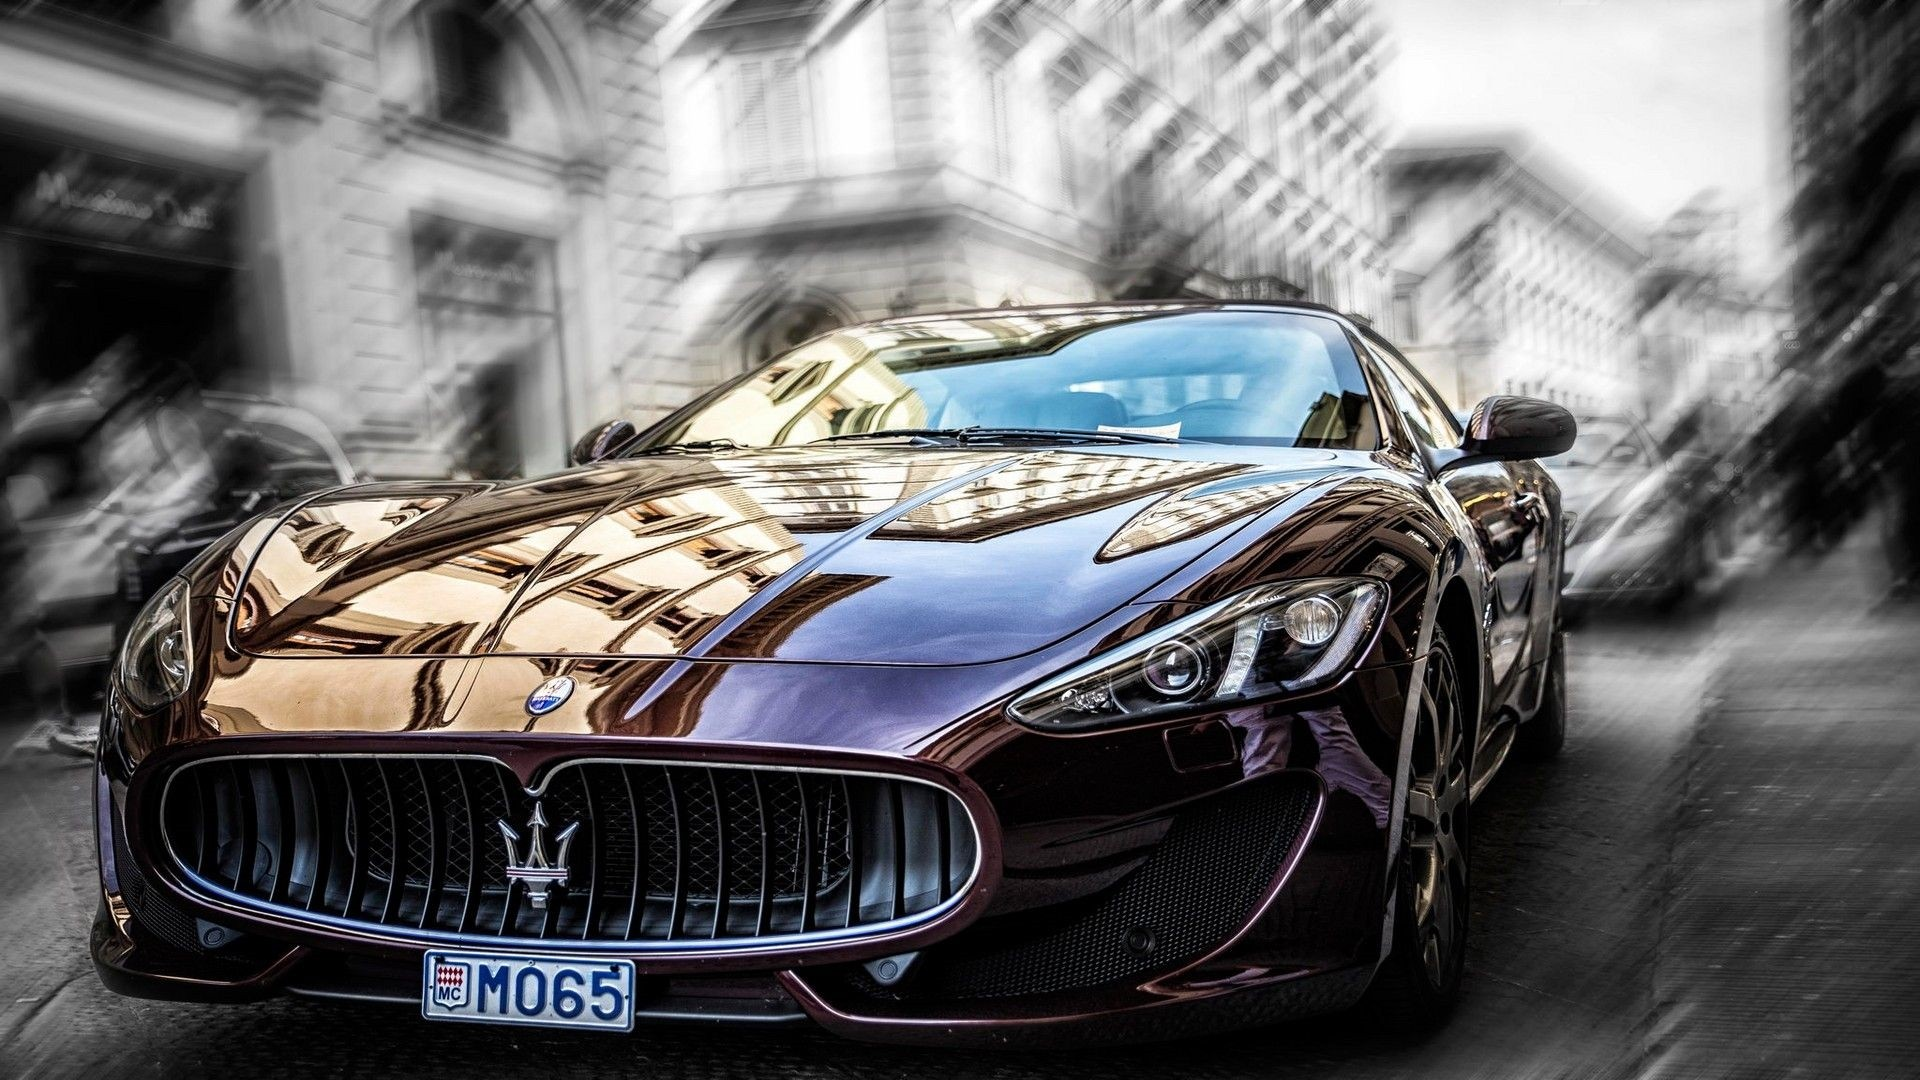 Maserati Wallpaper Full HD